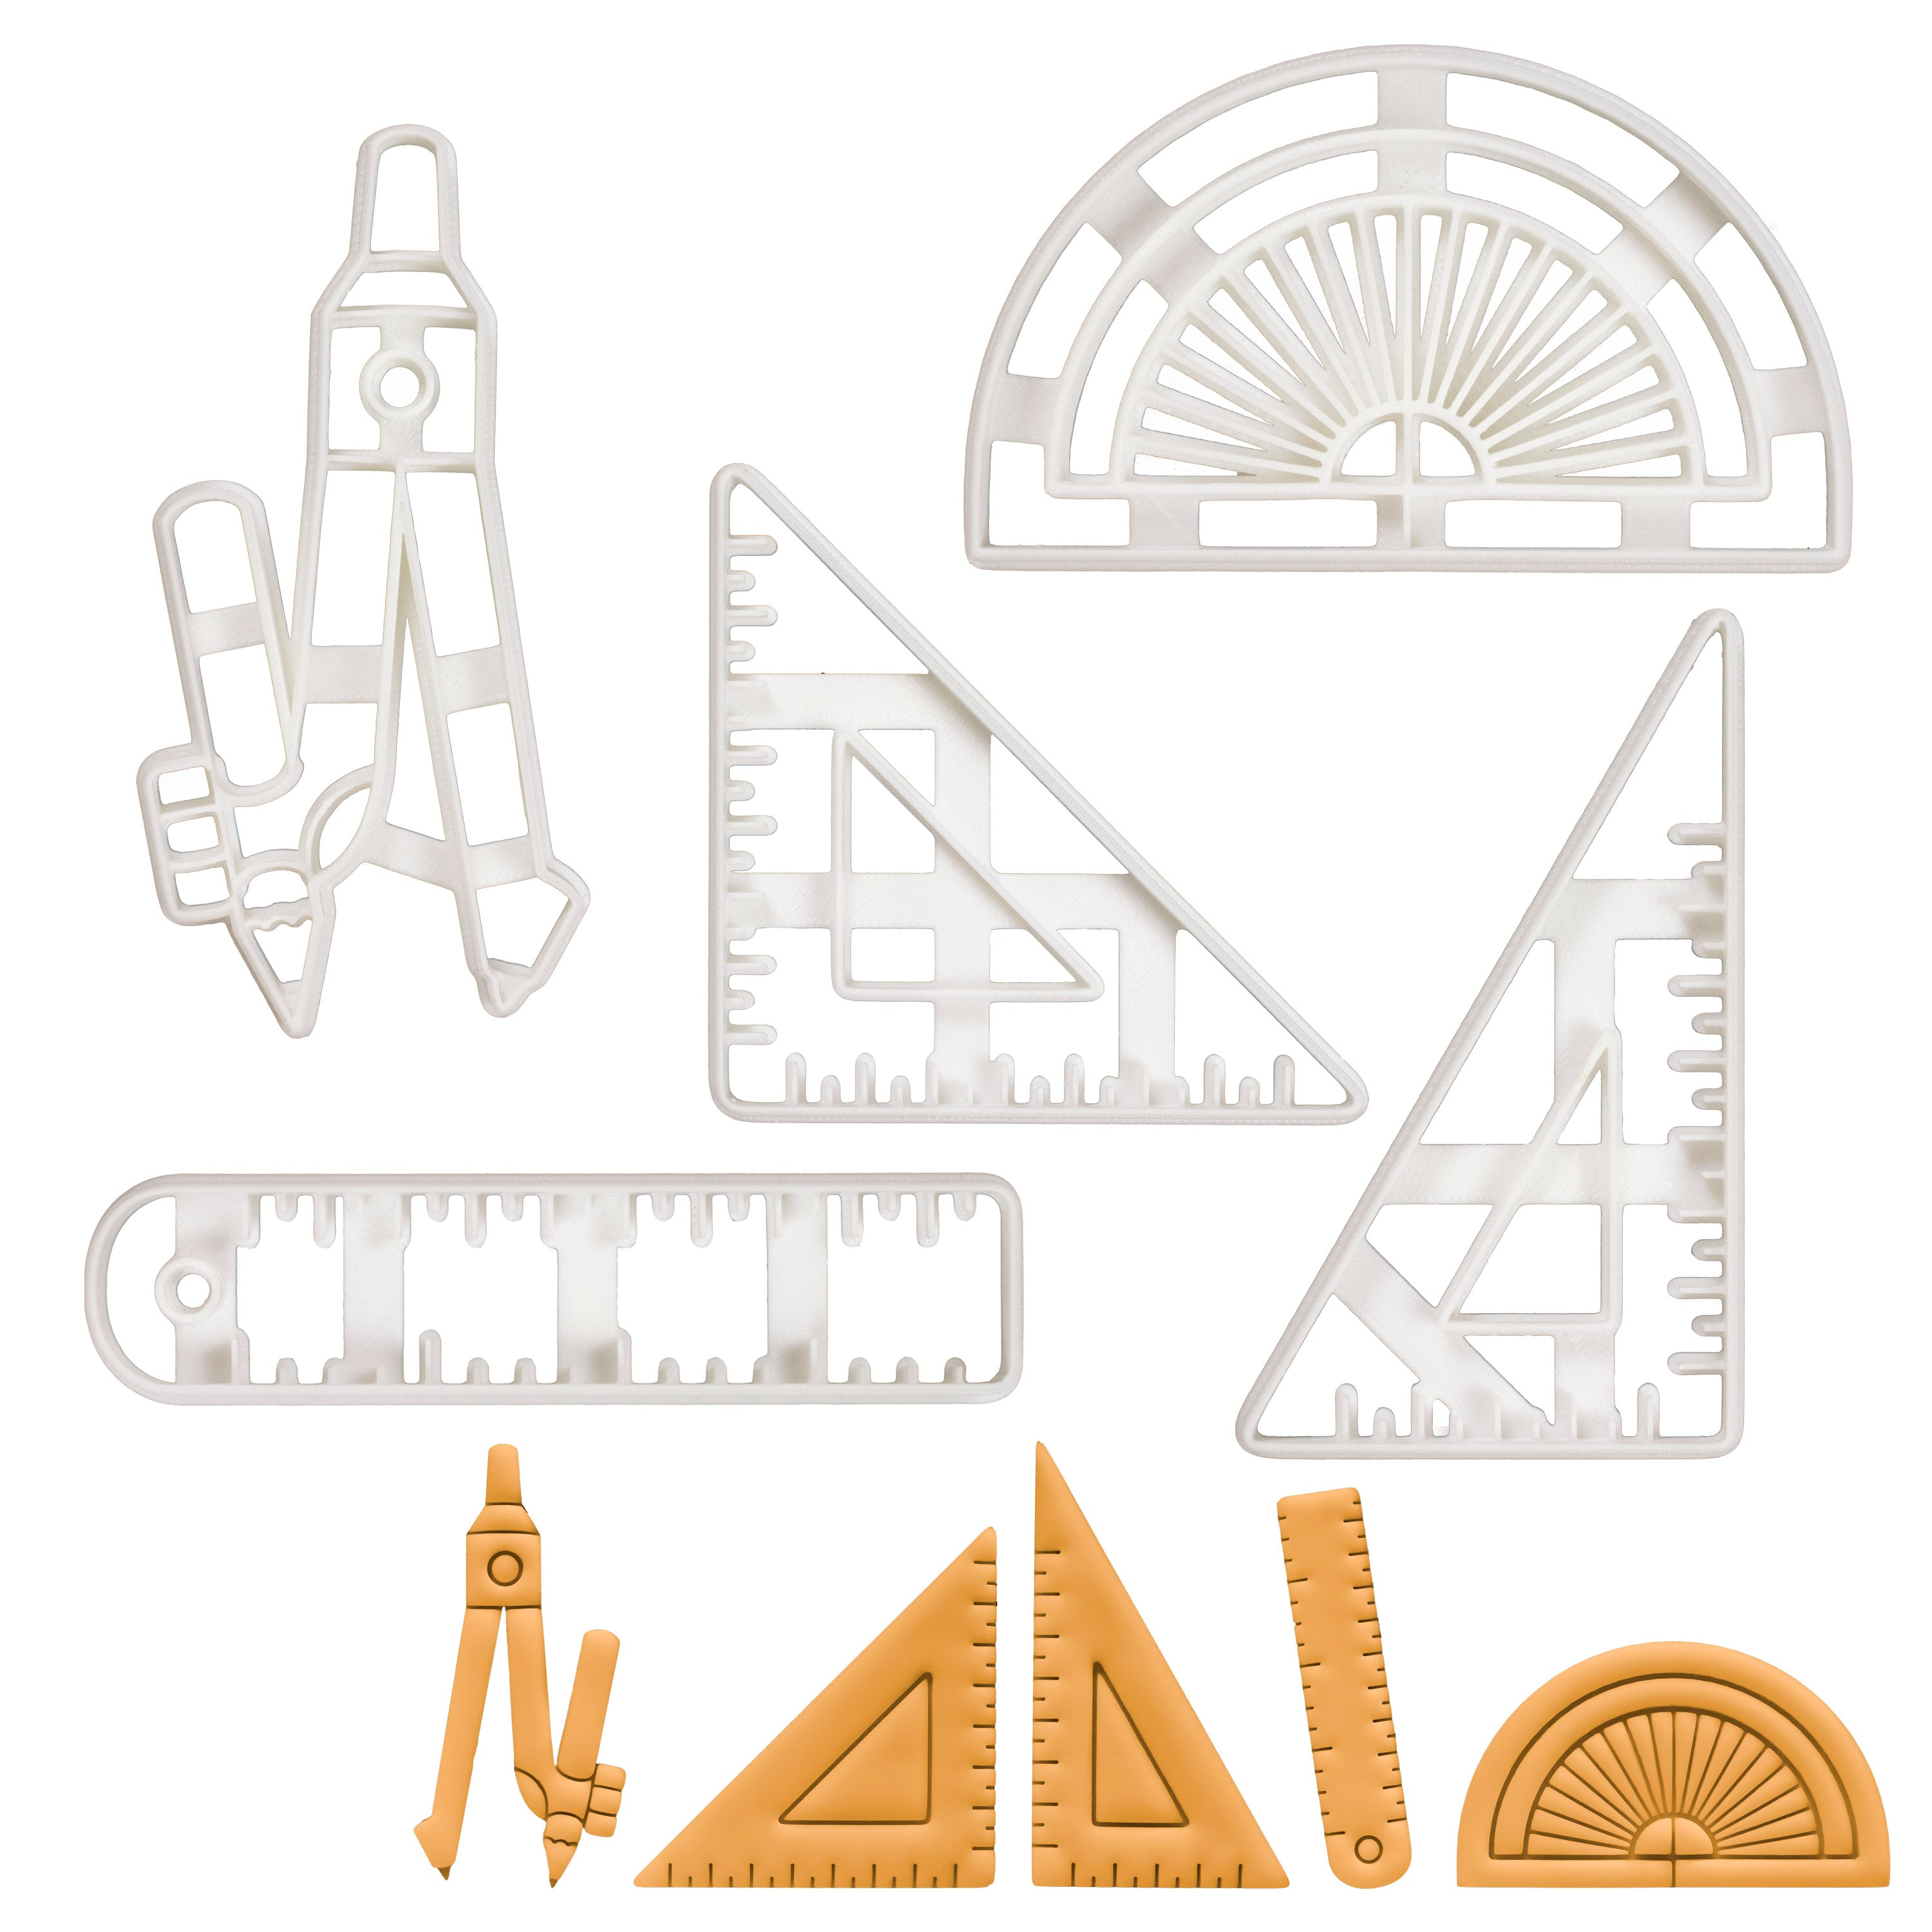 Set of 5 Technical Drawing Instruments (Designs: Set Squares, Protractor, Ruler, Compass)